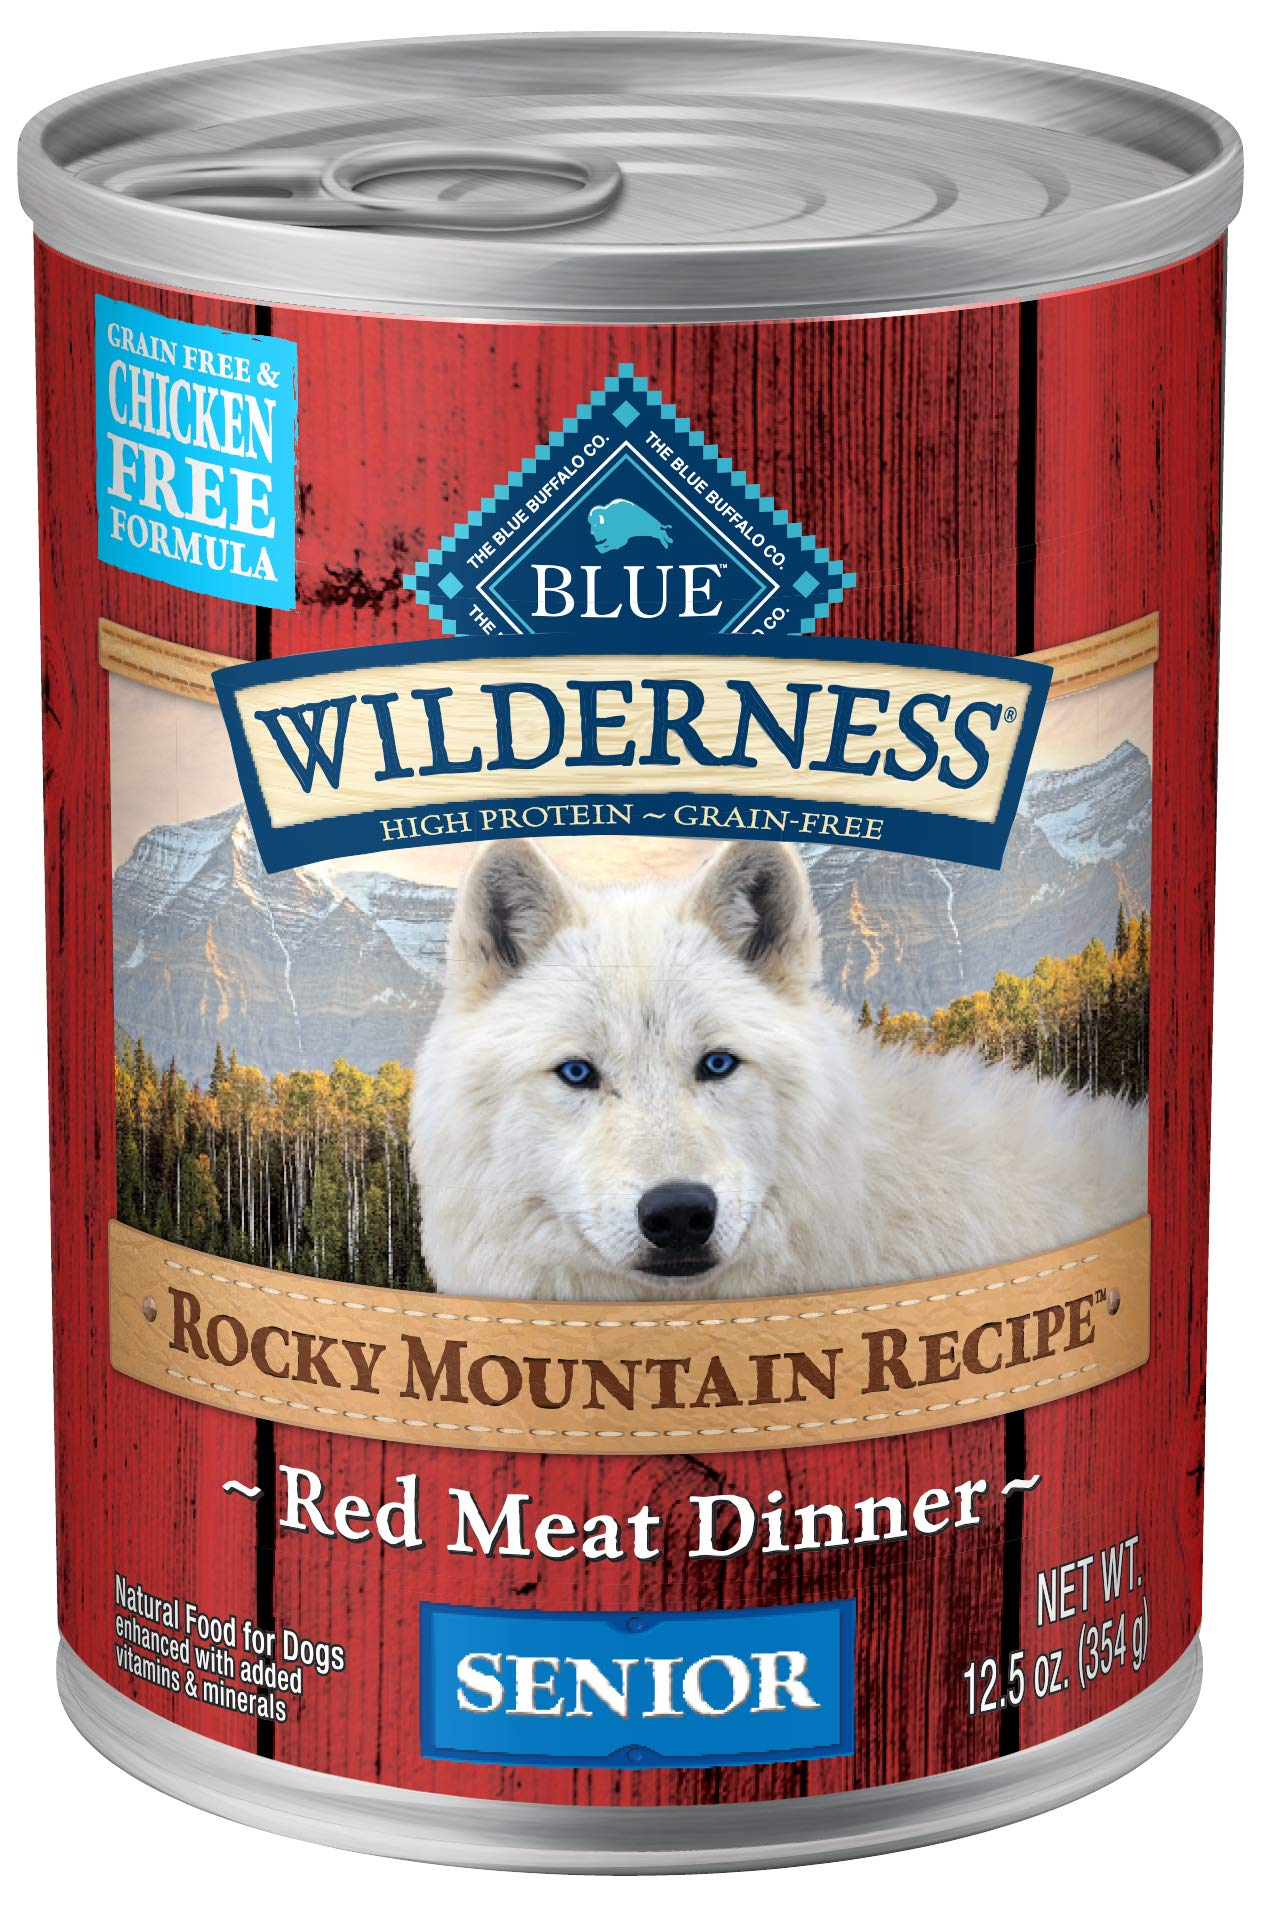 Blue Buffalo Wilderness Rocky Mountain Recipe High Protein Grain Free, Natural Senior Wet Dog Food, Red Meat 12.5-oz can (pack of 12) by BLUE BUFFALO